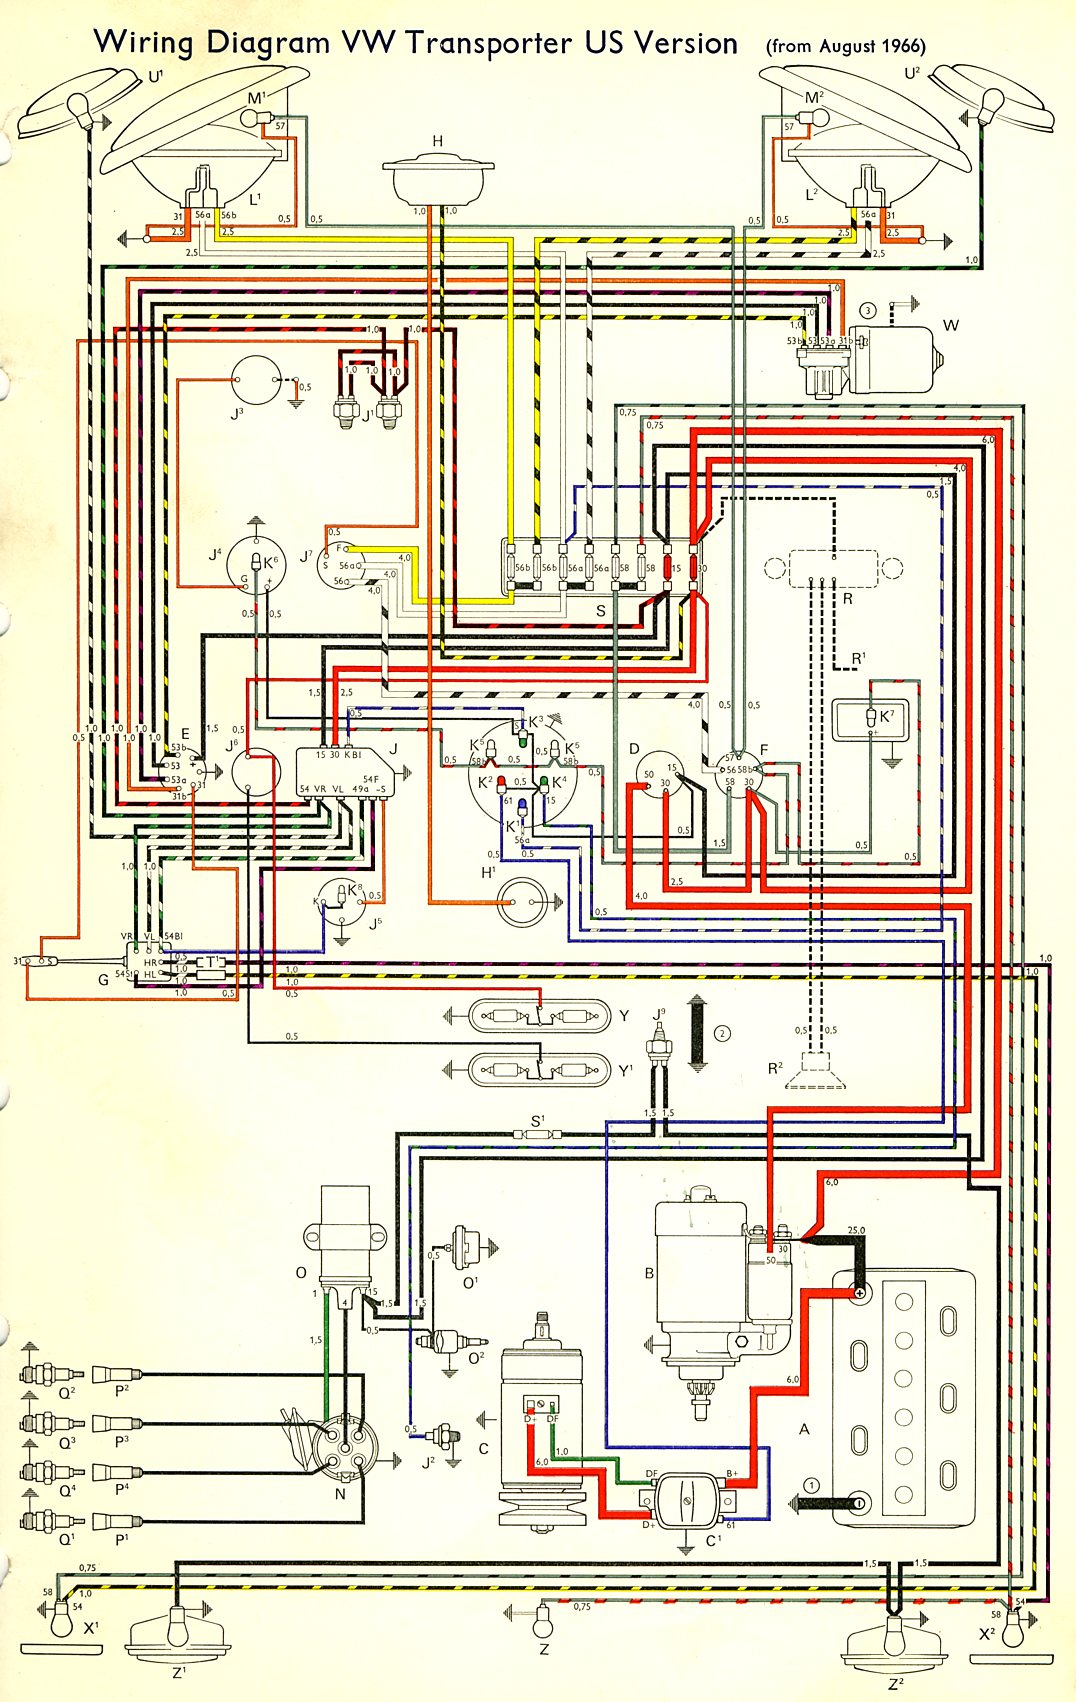 bus_67_USA 1967 bus wiring diagram (usa) thegoldenbug com 1971 vw bus wiring diagram at mifinder.co